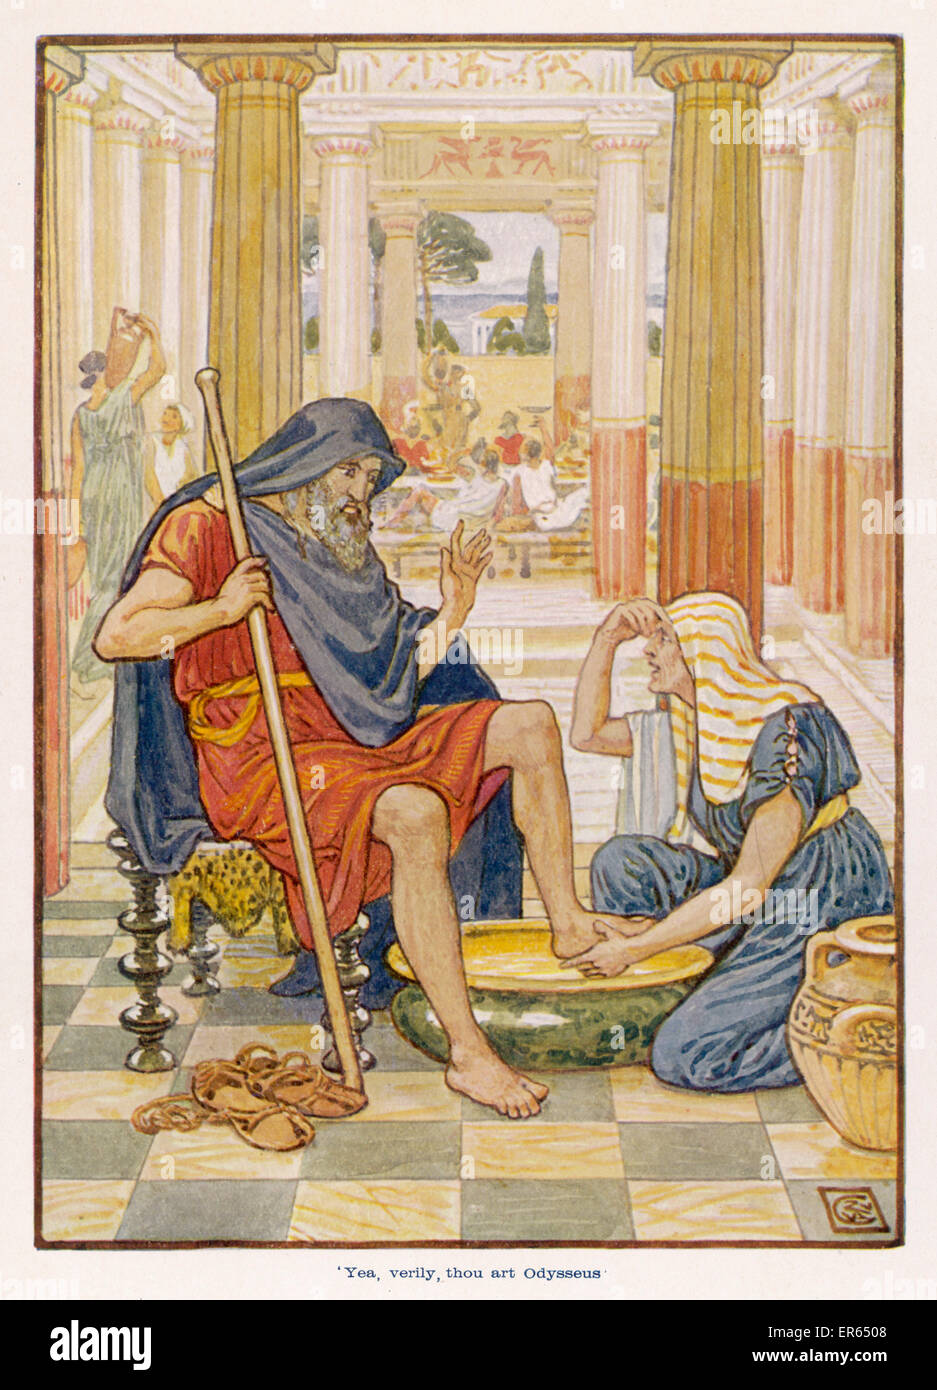 odysseus as a beggar essay In the odyssey, why was poseidon angry at odysseus update cancel answer wiki  when odysseus was disguised as a beggar in the odyssey, what exactly did he wear.